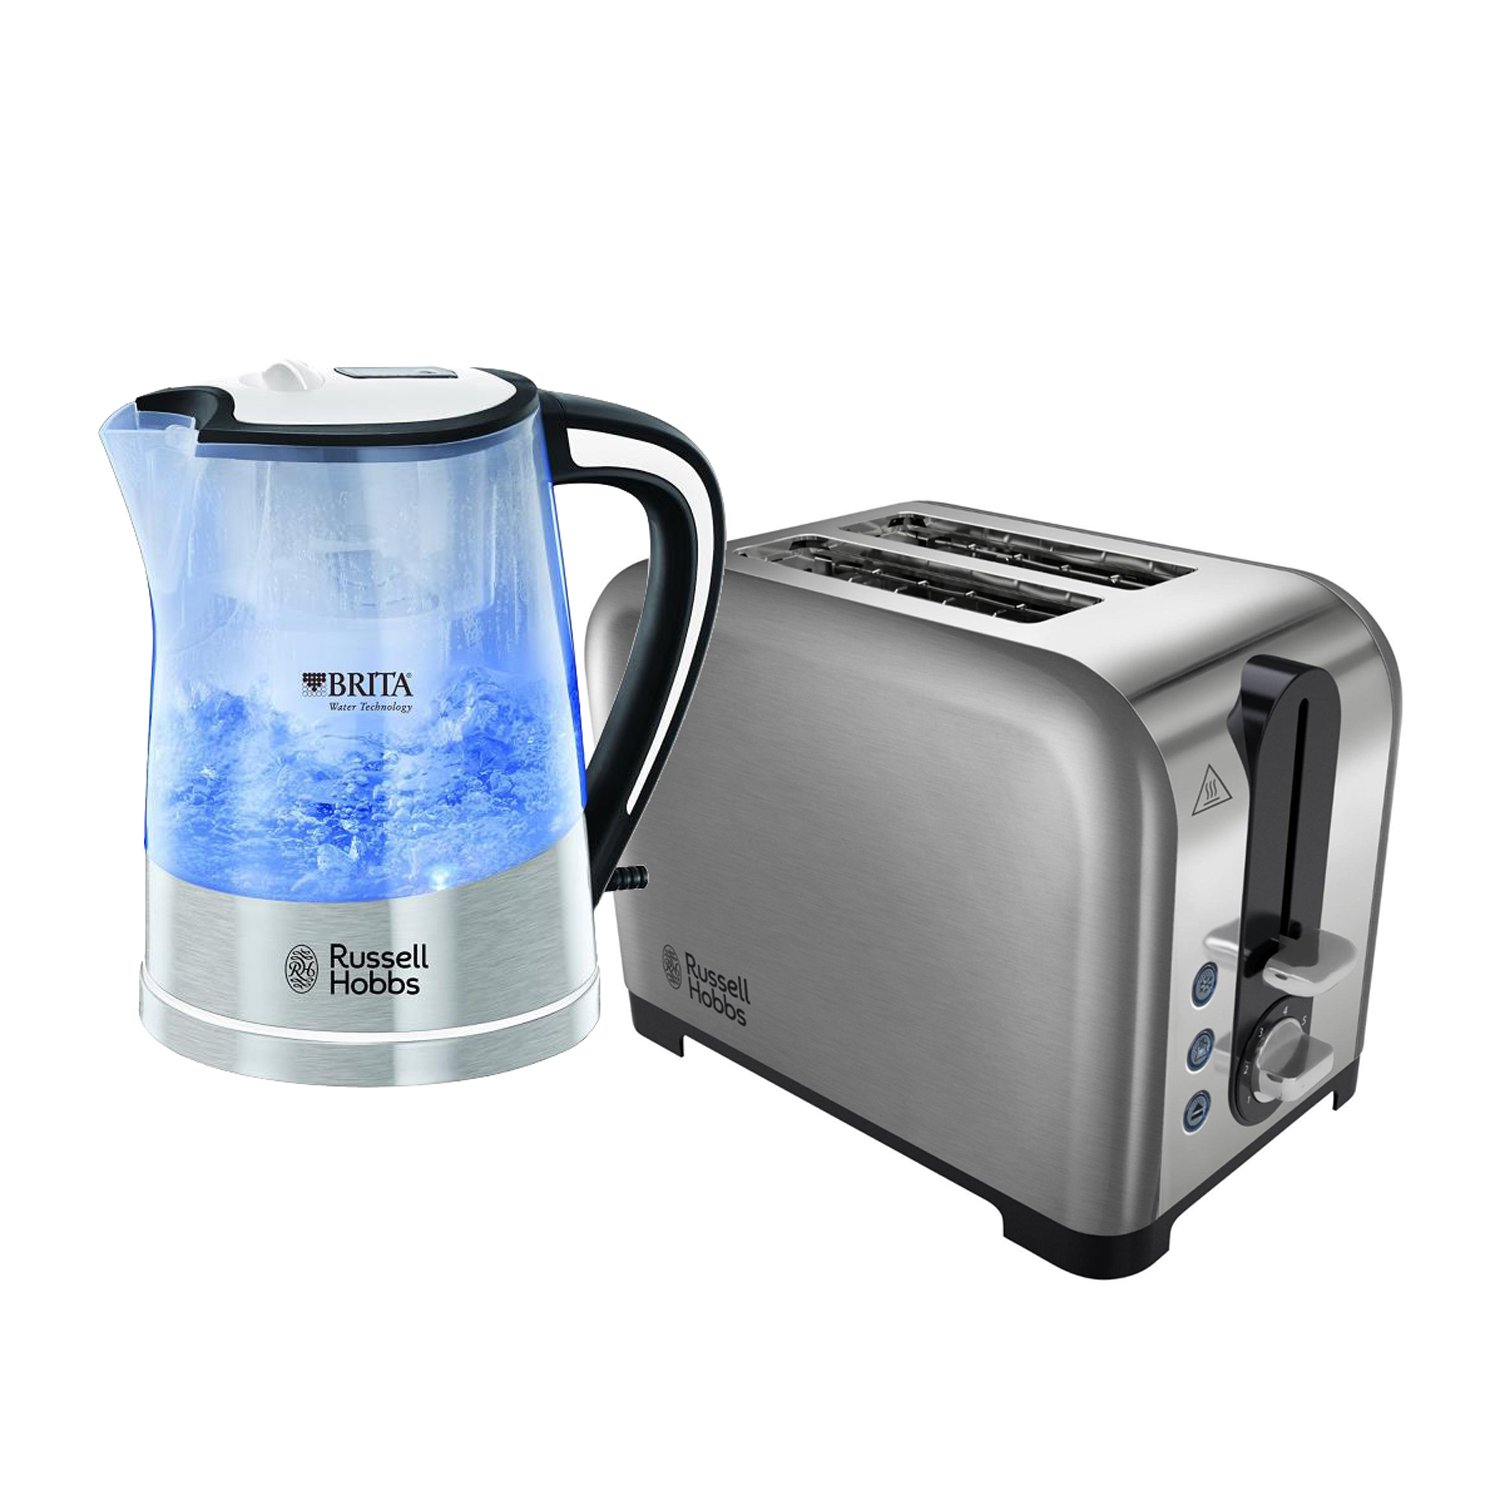 Russell Hobbs 3000W Cordless 1 Litre Electric Purity Kettle and 2 Slice Wide Slot Toaster Set - Includes Free Brita Maxtra Filter Russell Hobbs - Tooltime®